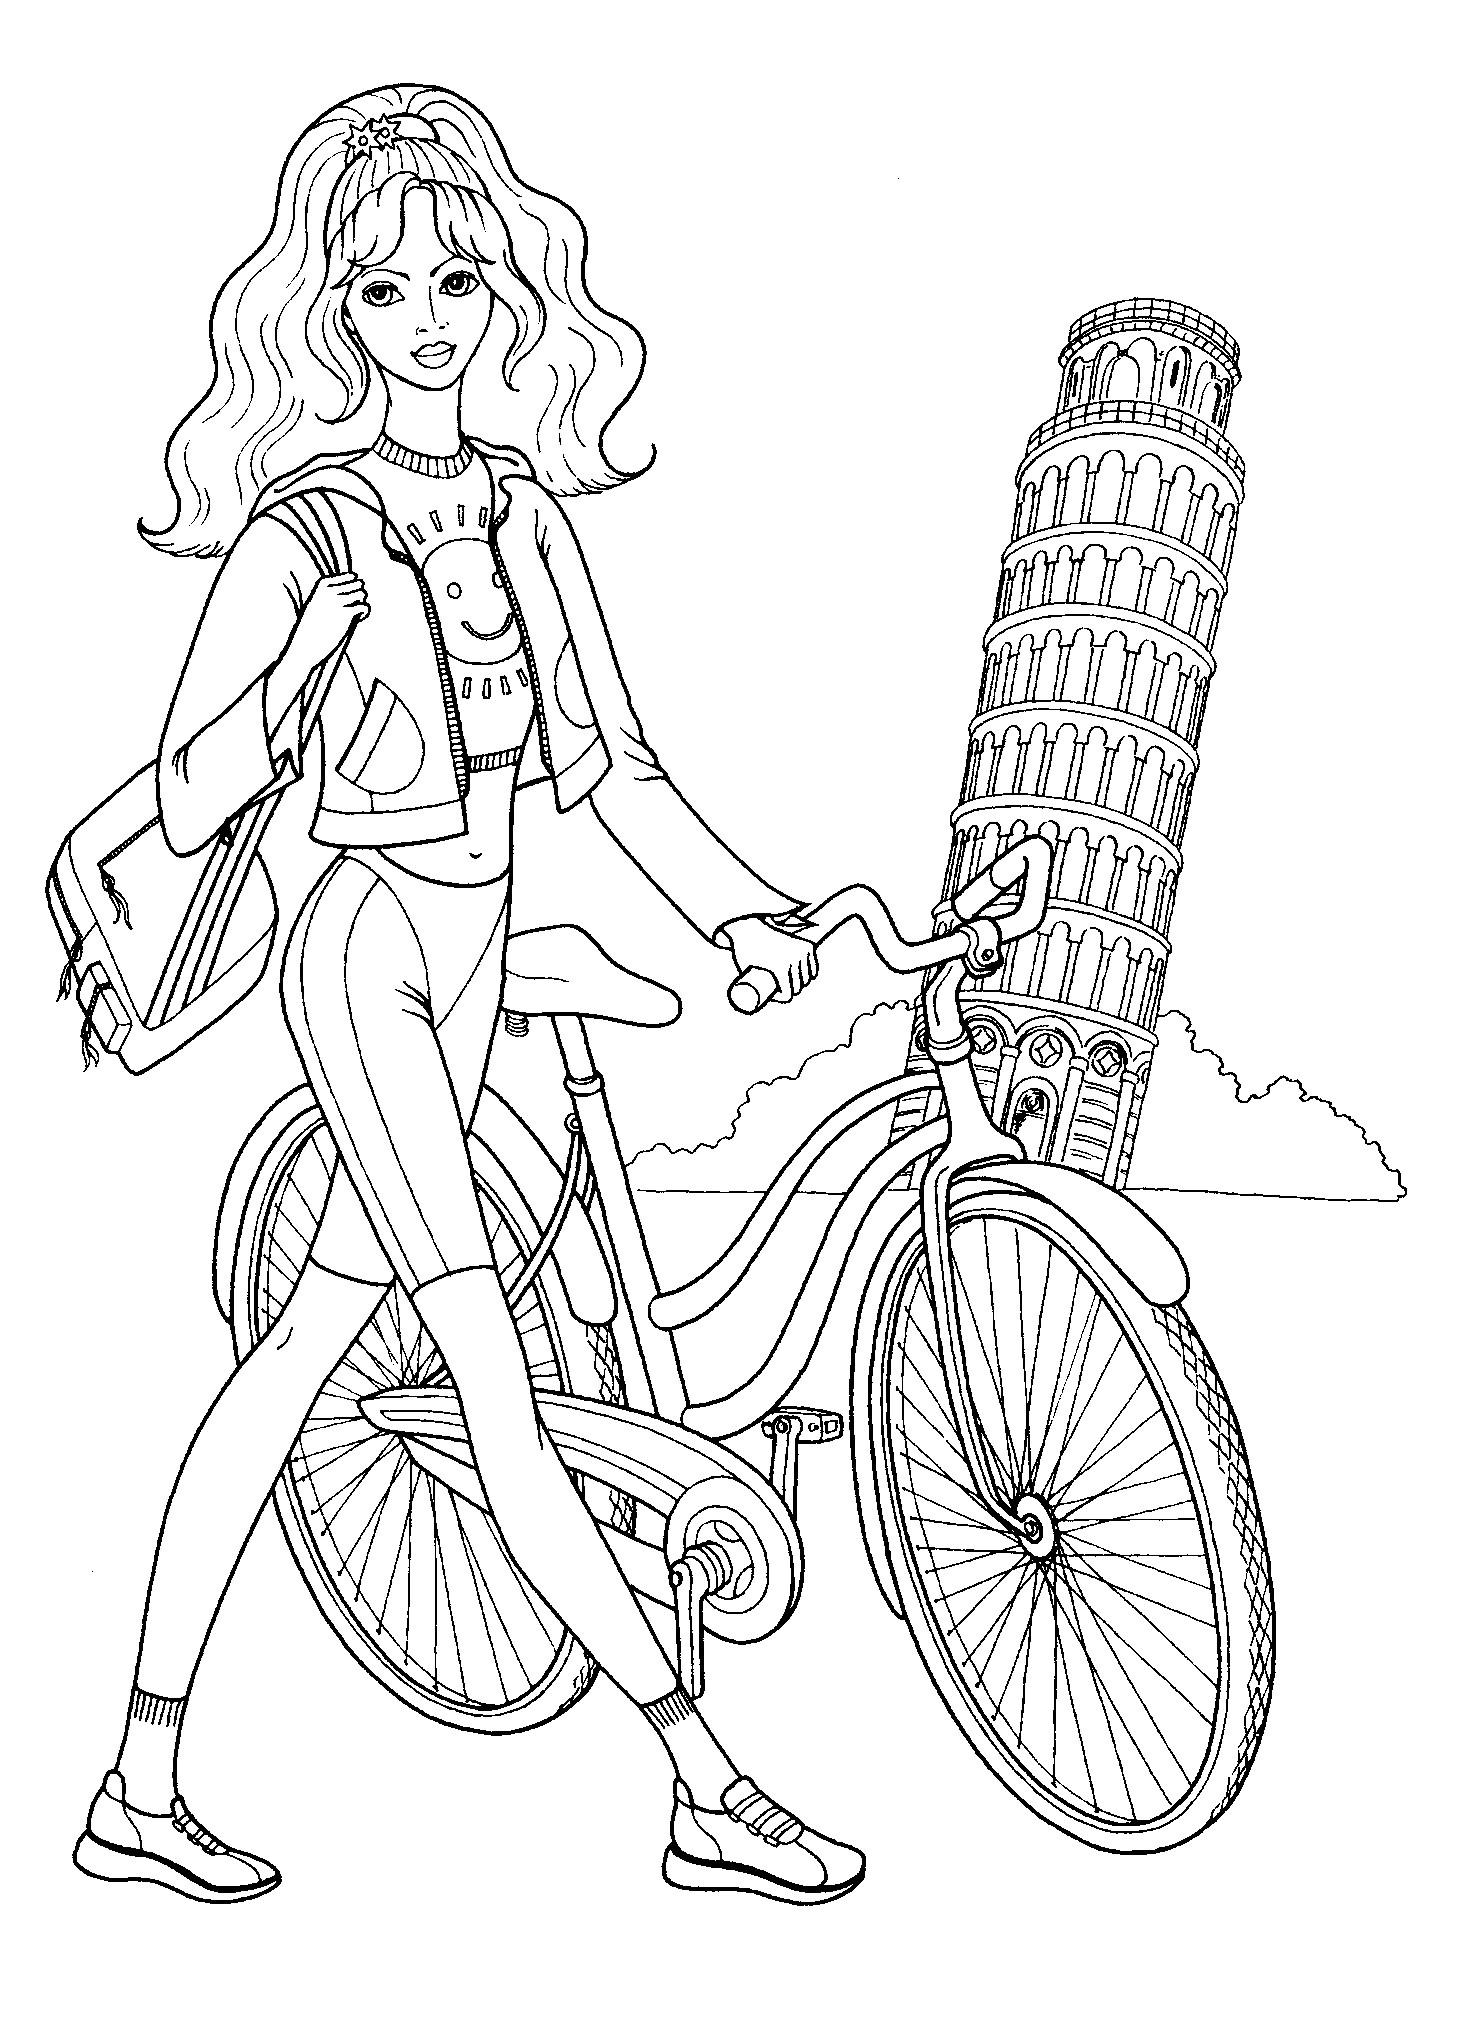 free girl coloring pages to print the best ideas for coloring pages for girls printable to girl pages print coloring free